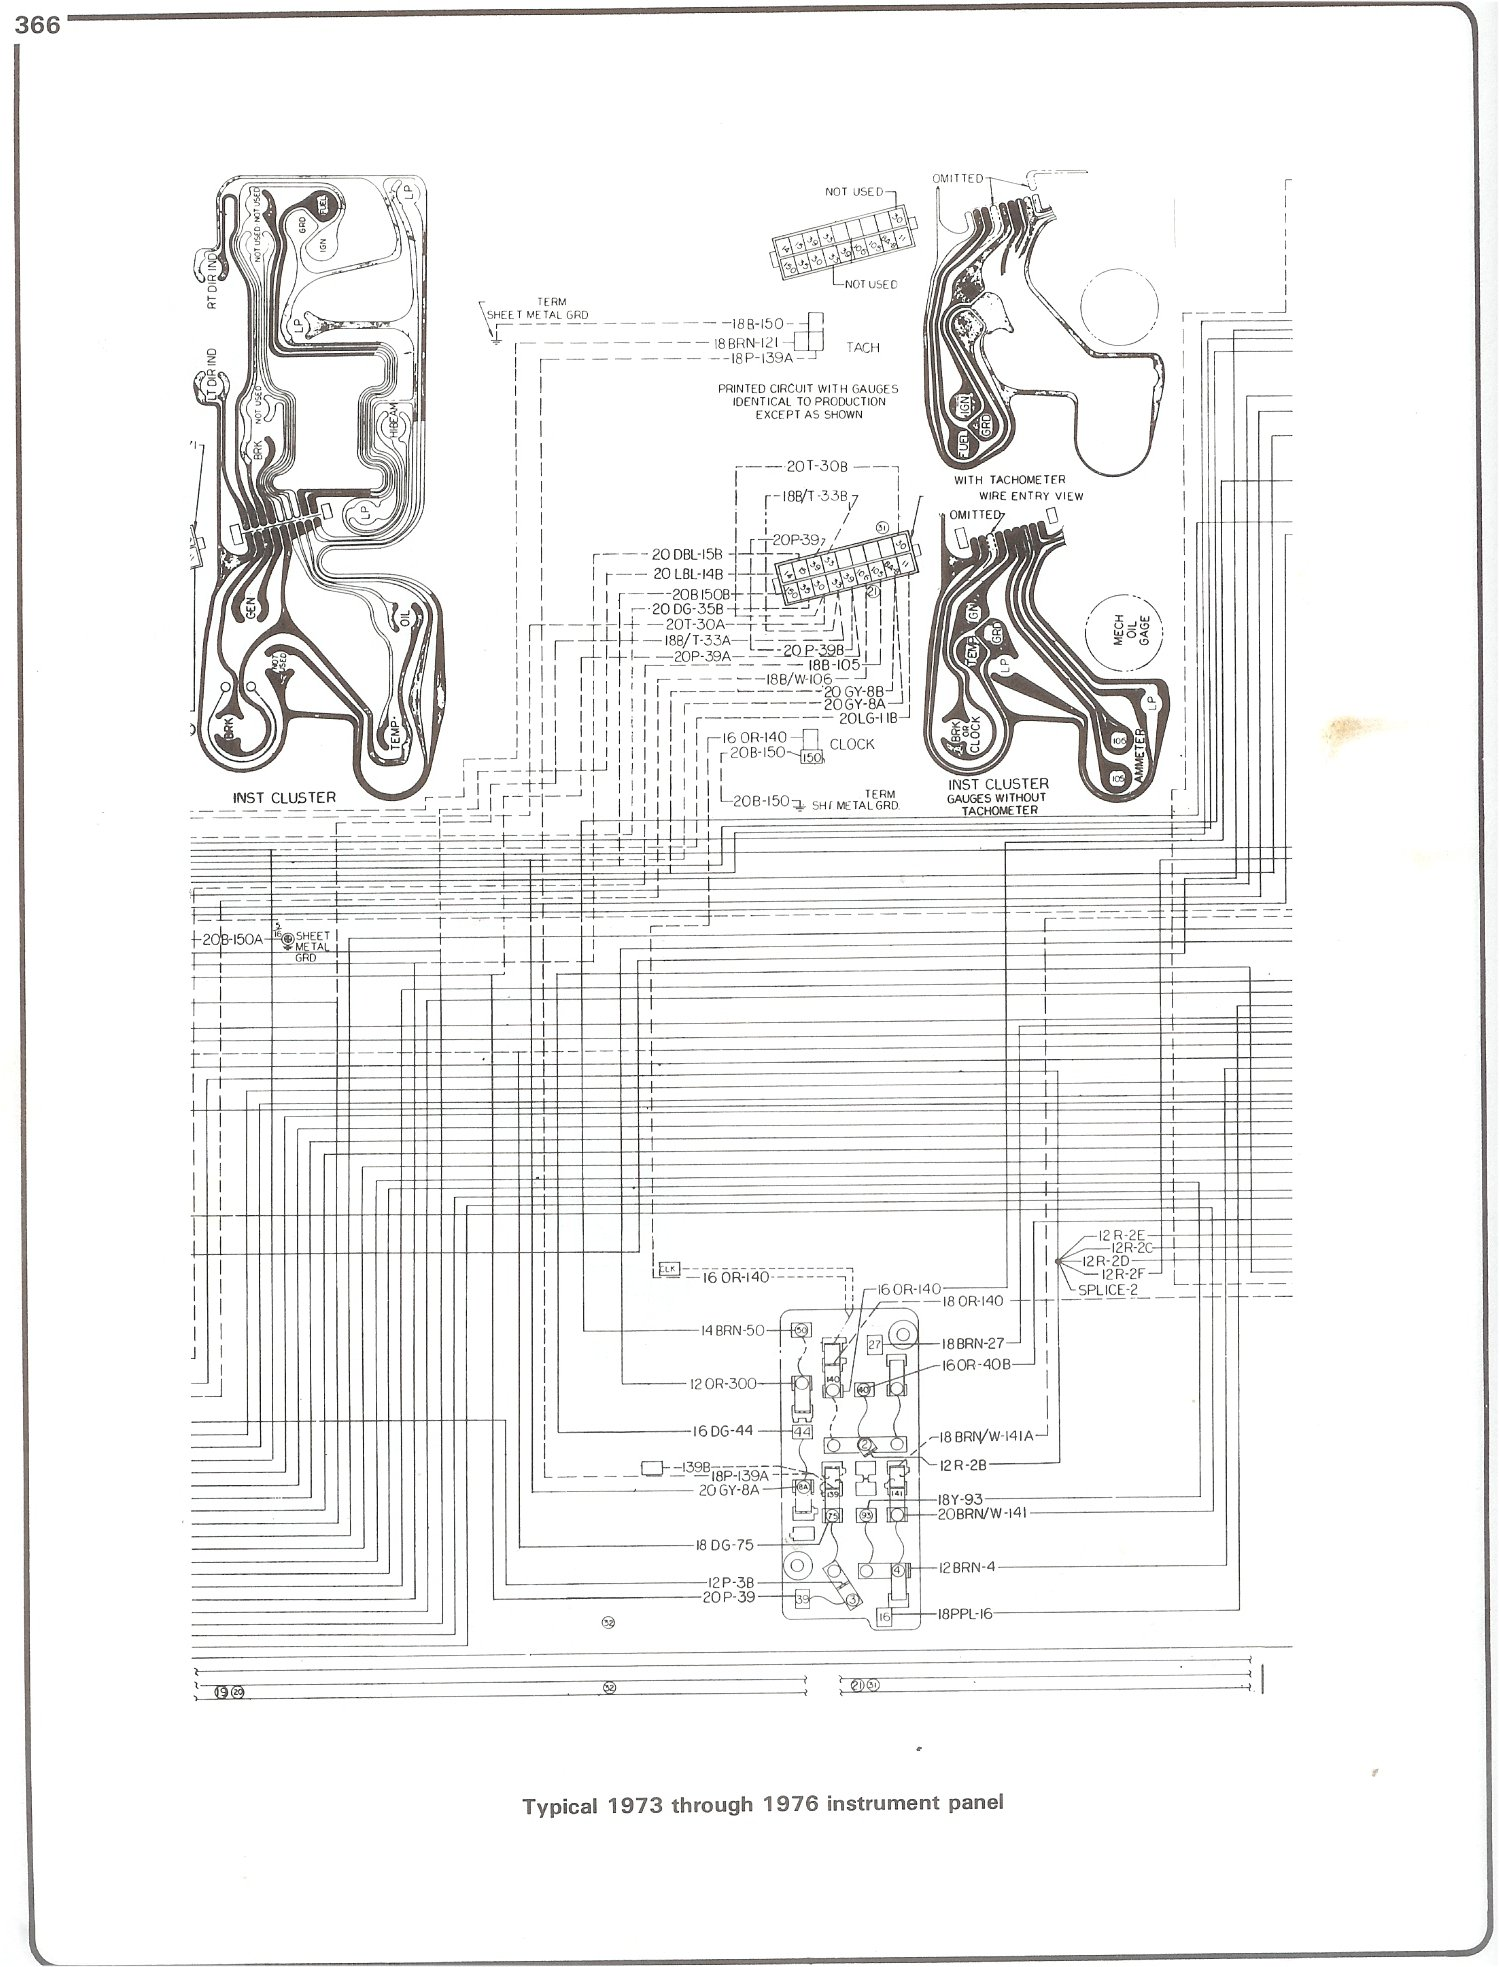 complete 73 87 wiring diagrams rh forum 73 87chevytrucks com 1986 Chevy Truck Wiring Diagram 1986 Dodge Truck Wiring Diagram